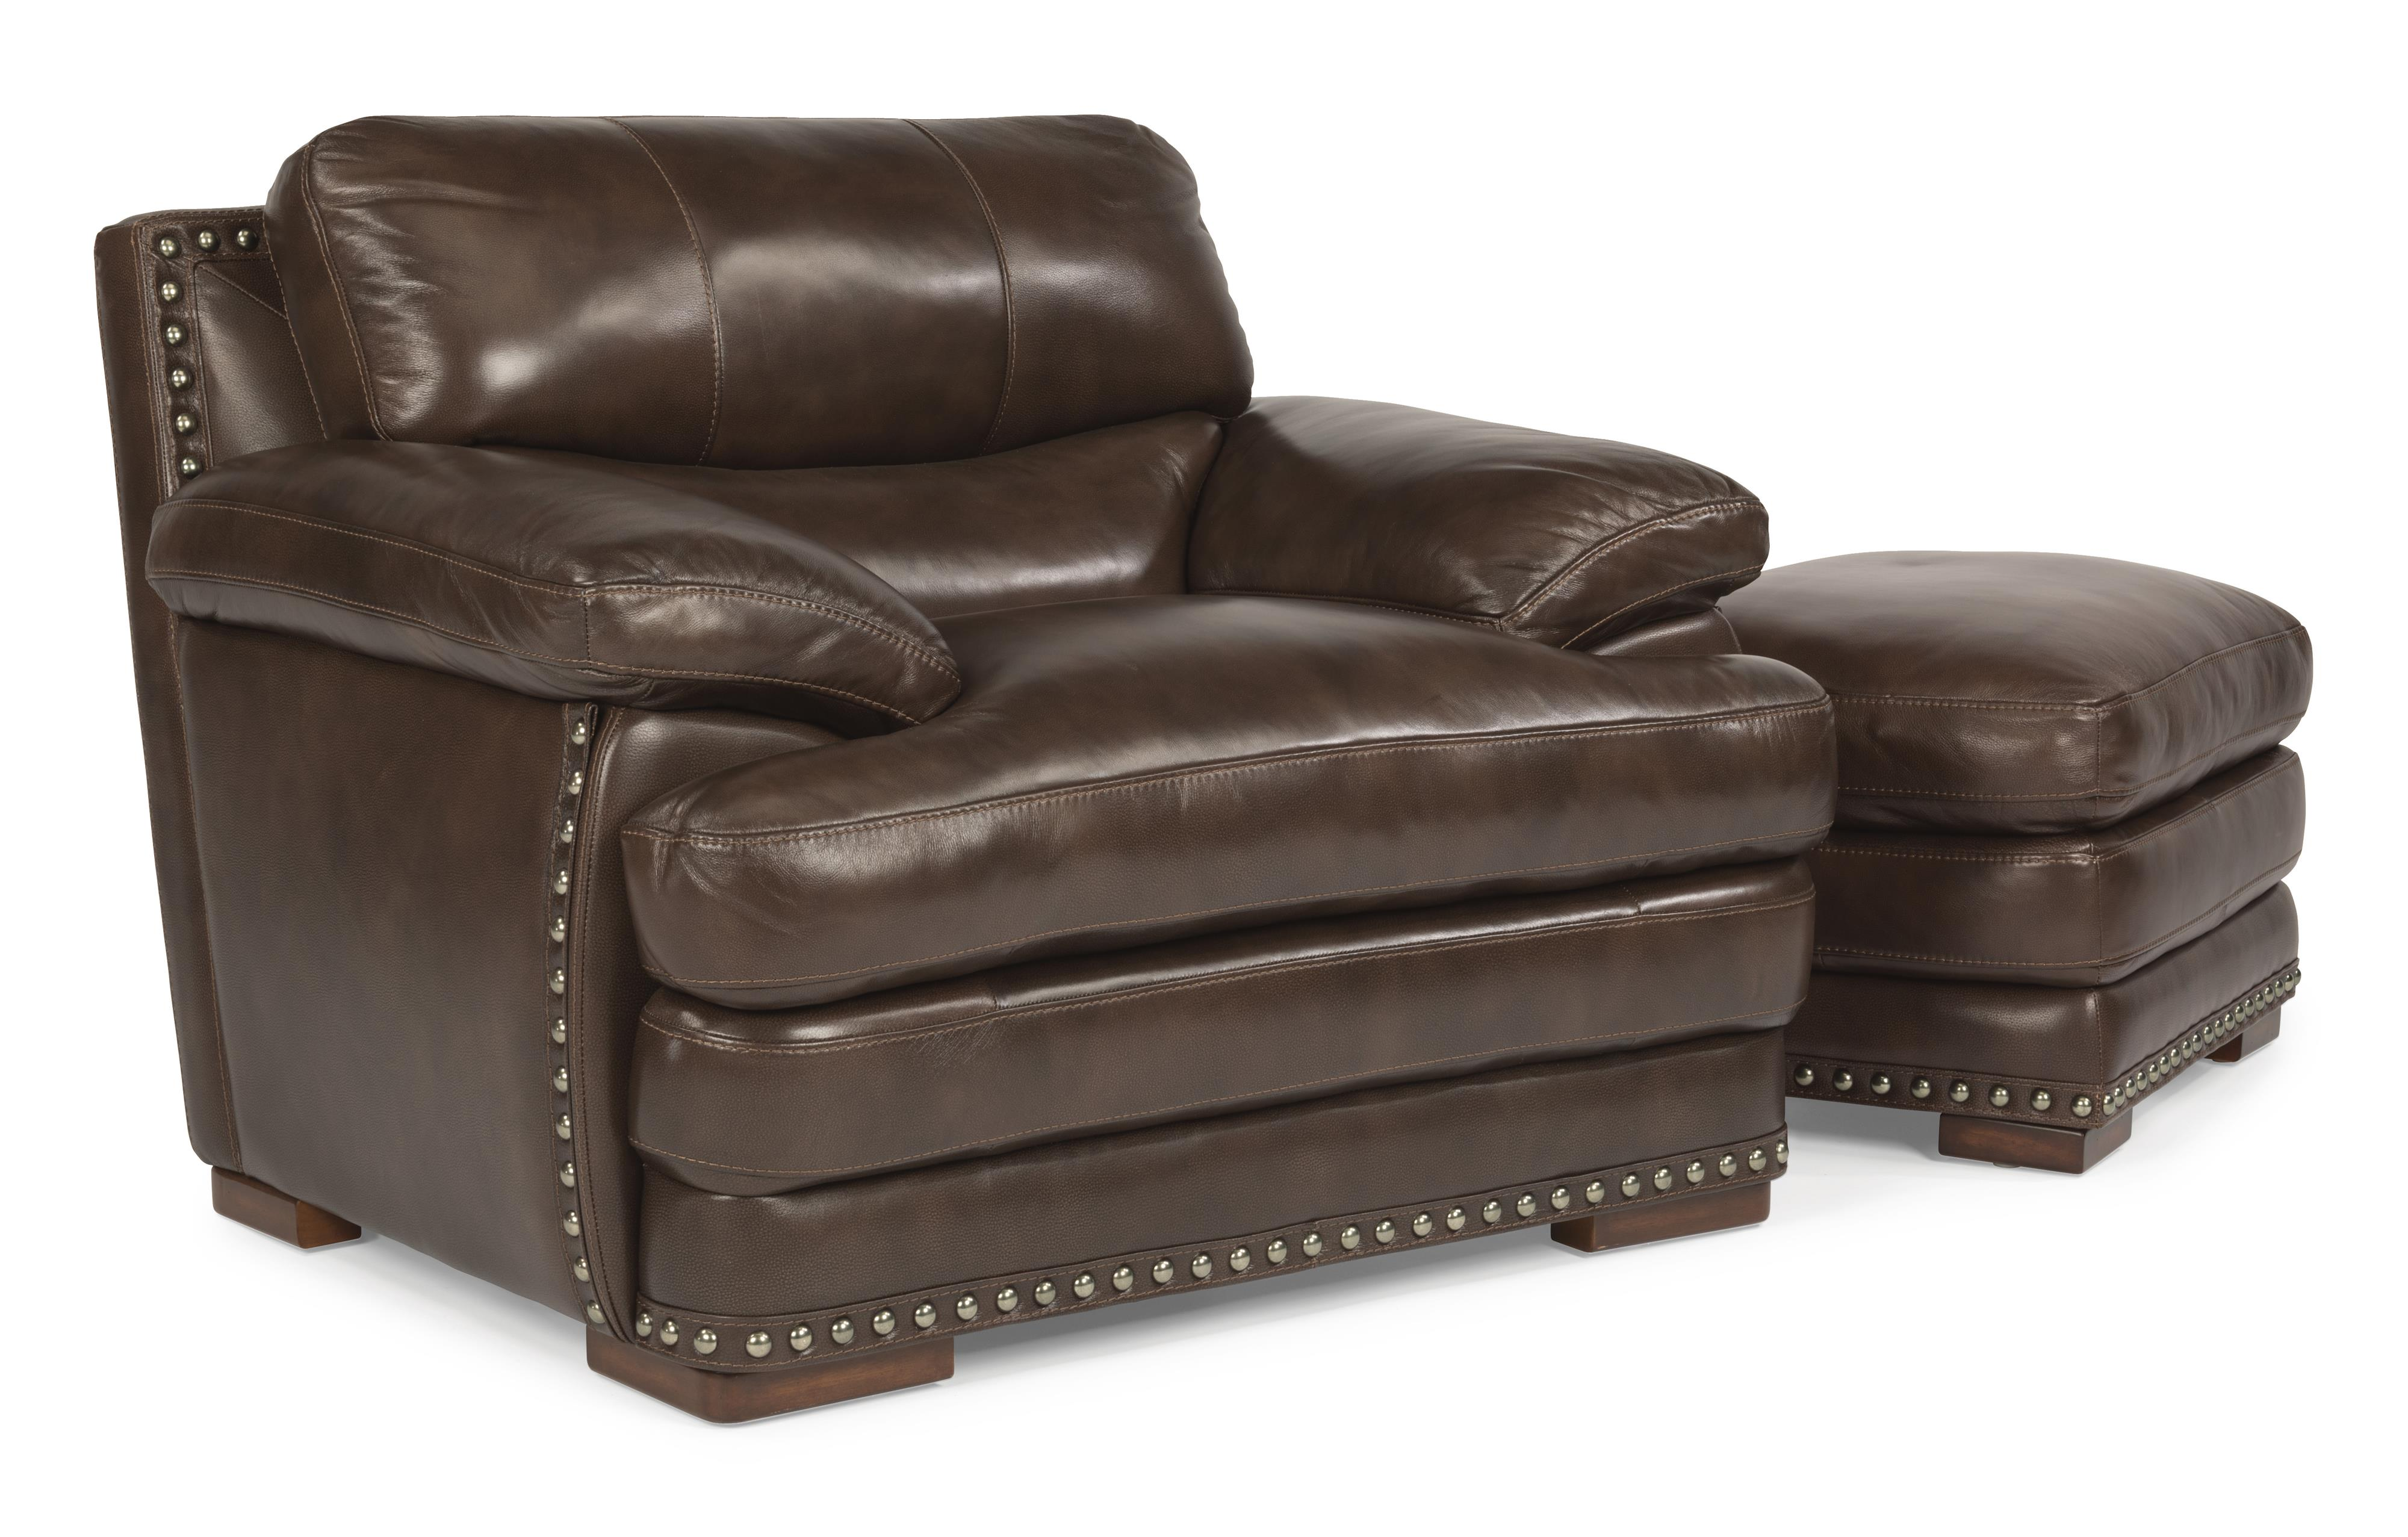 Flexsteel Latitudes Dylan Leather Chair & Ottoman with Nailhead